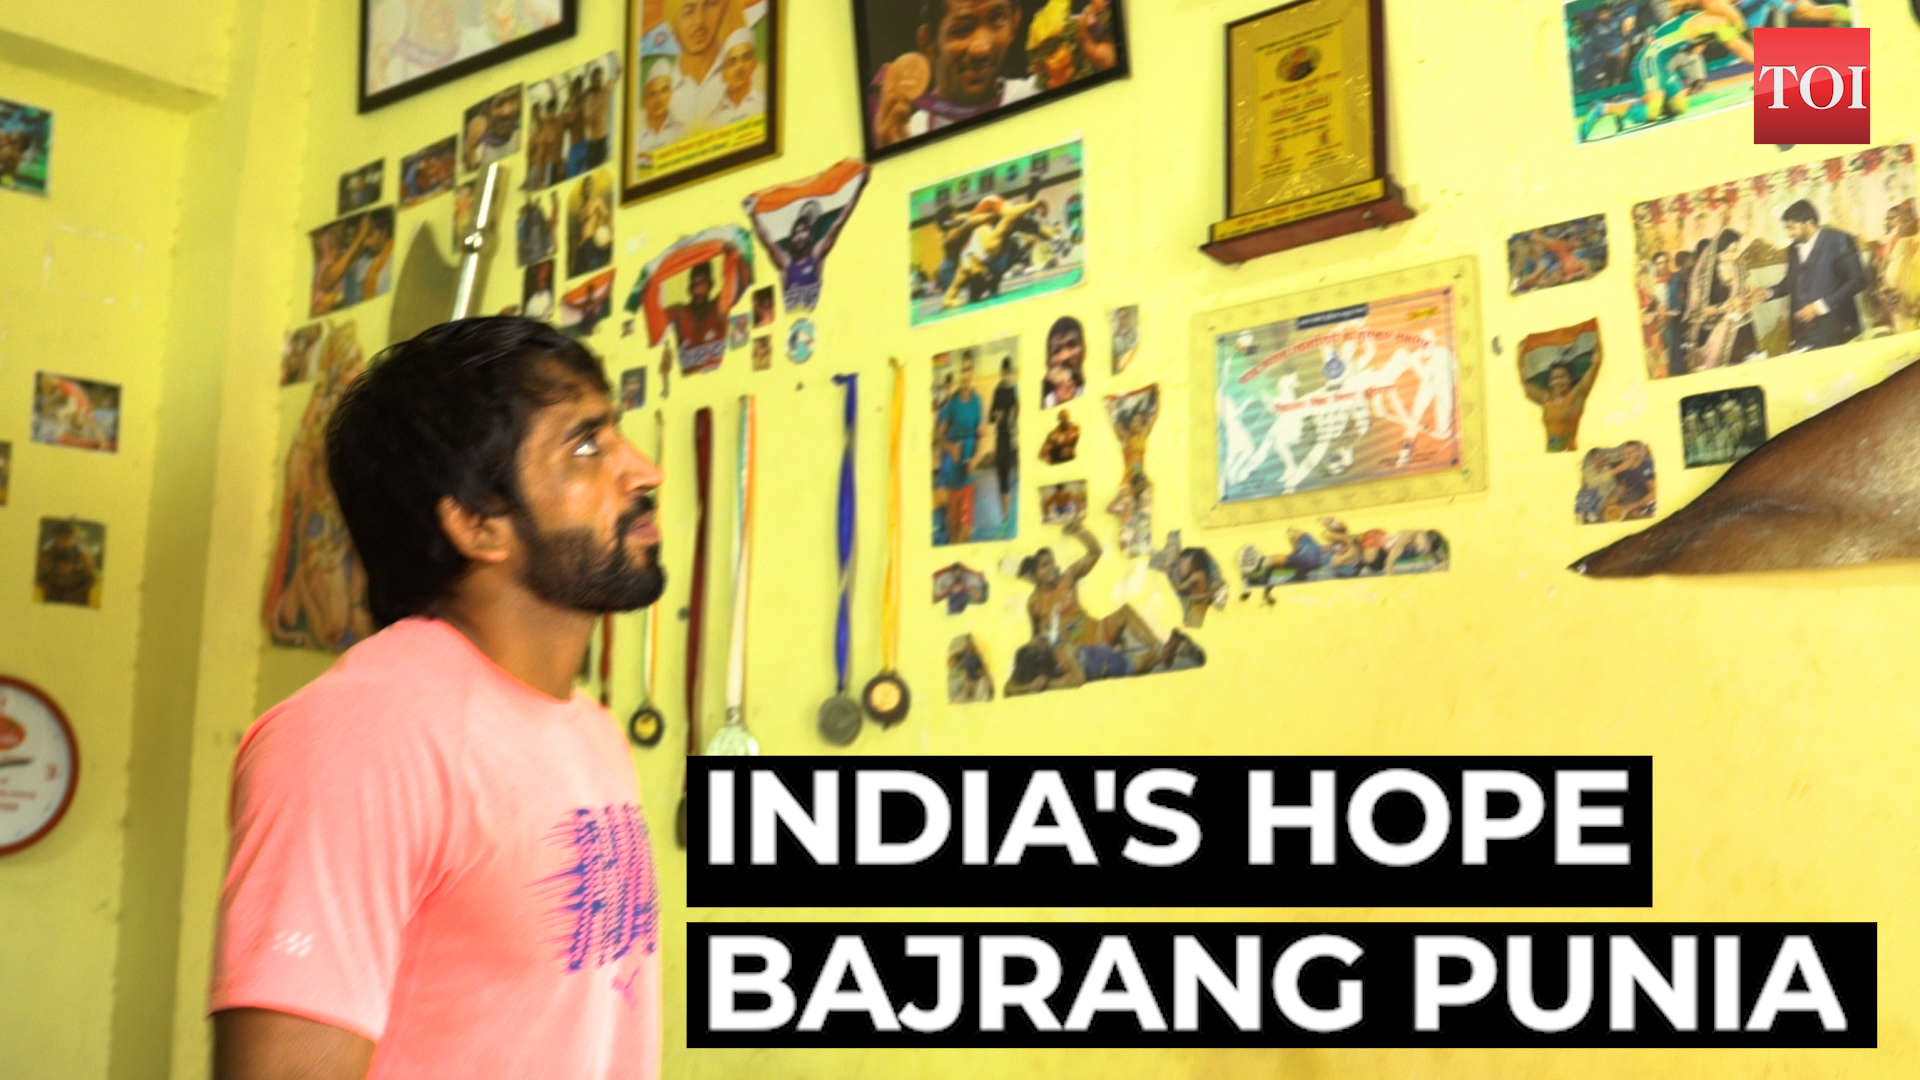 freestyle-wrestler-bajrang-punia-a-strong-contender-at-the-tokyo-olympics